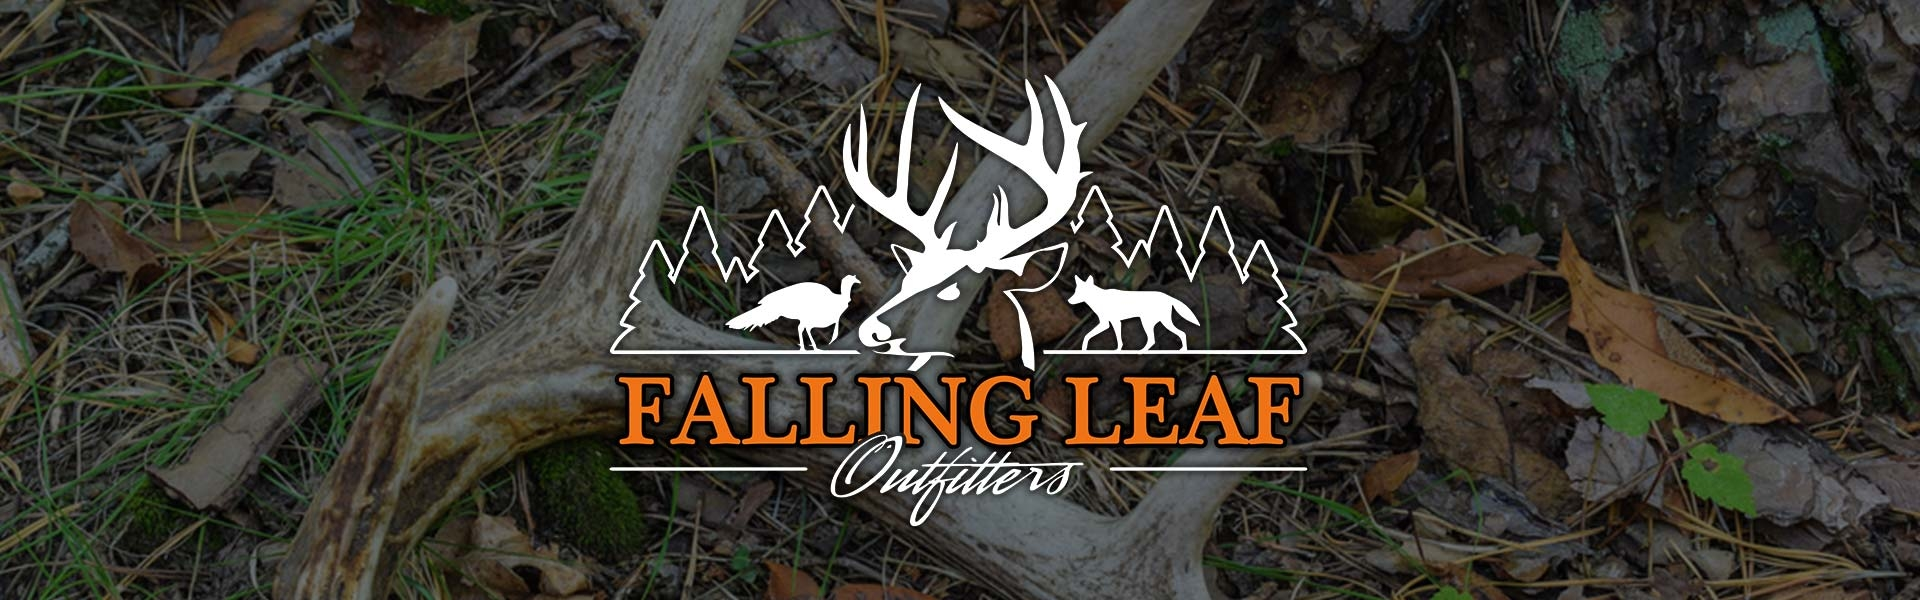 Link to Falling Leaf Outfitters